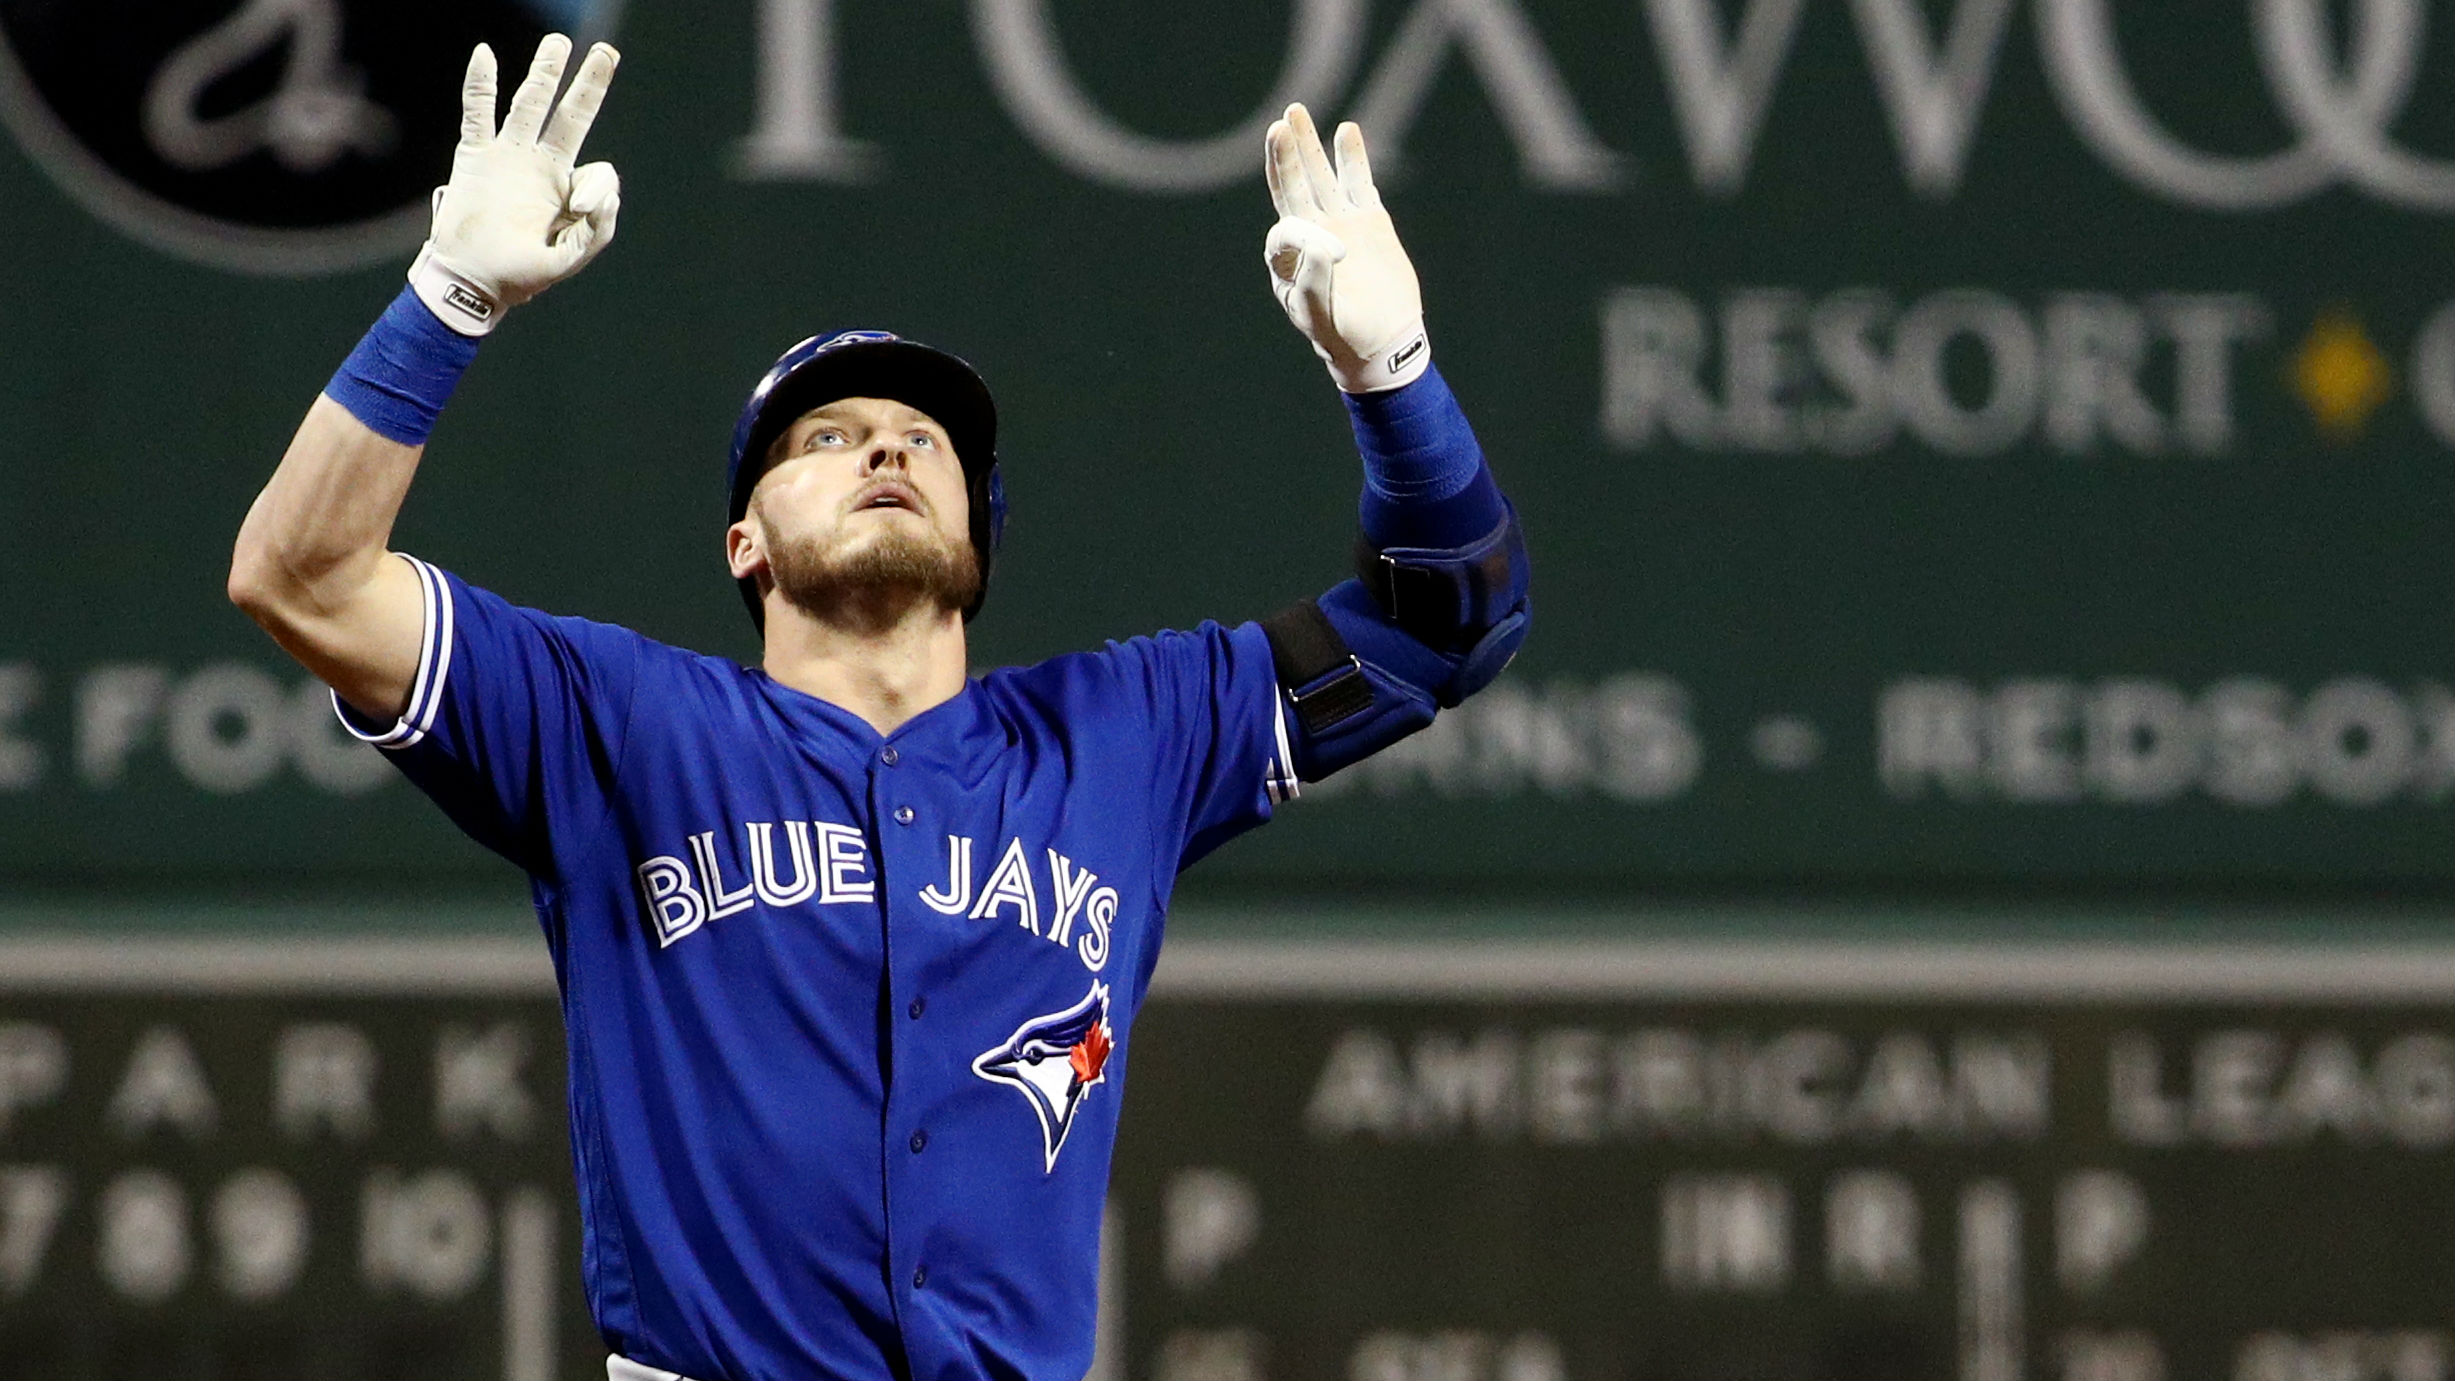 Sale gives up 4 HRs in playoff tuneup, Jays beat Red Sox